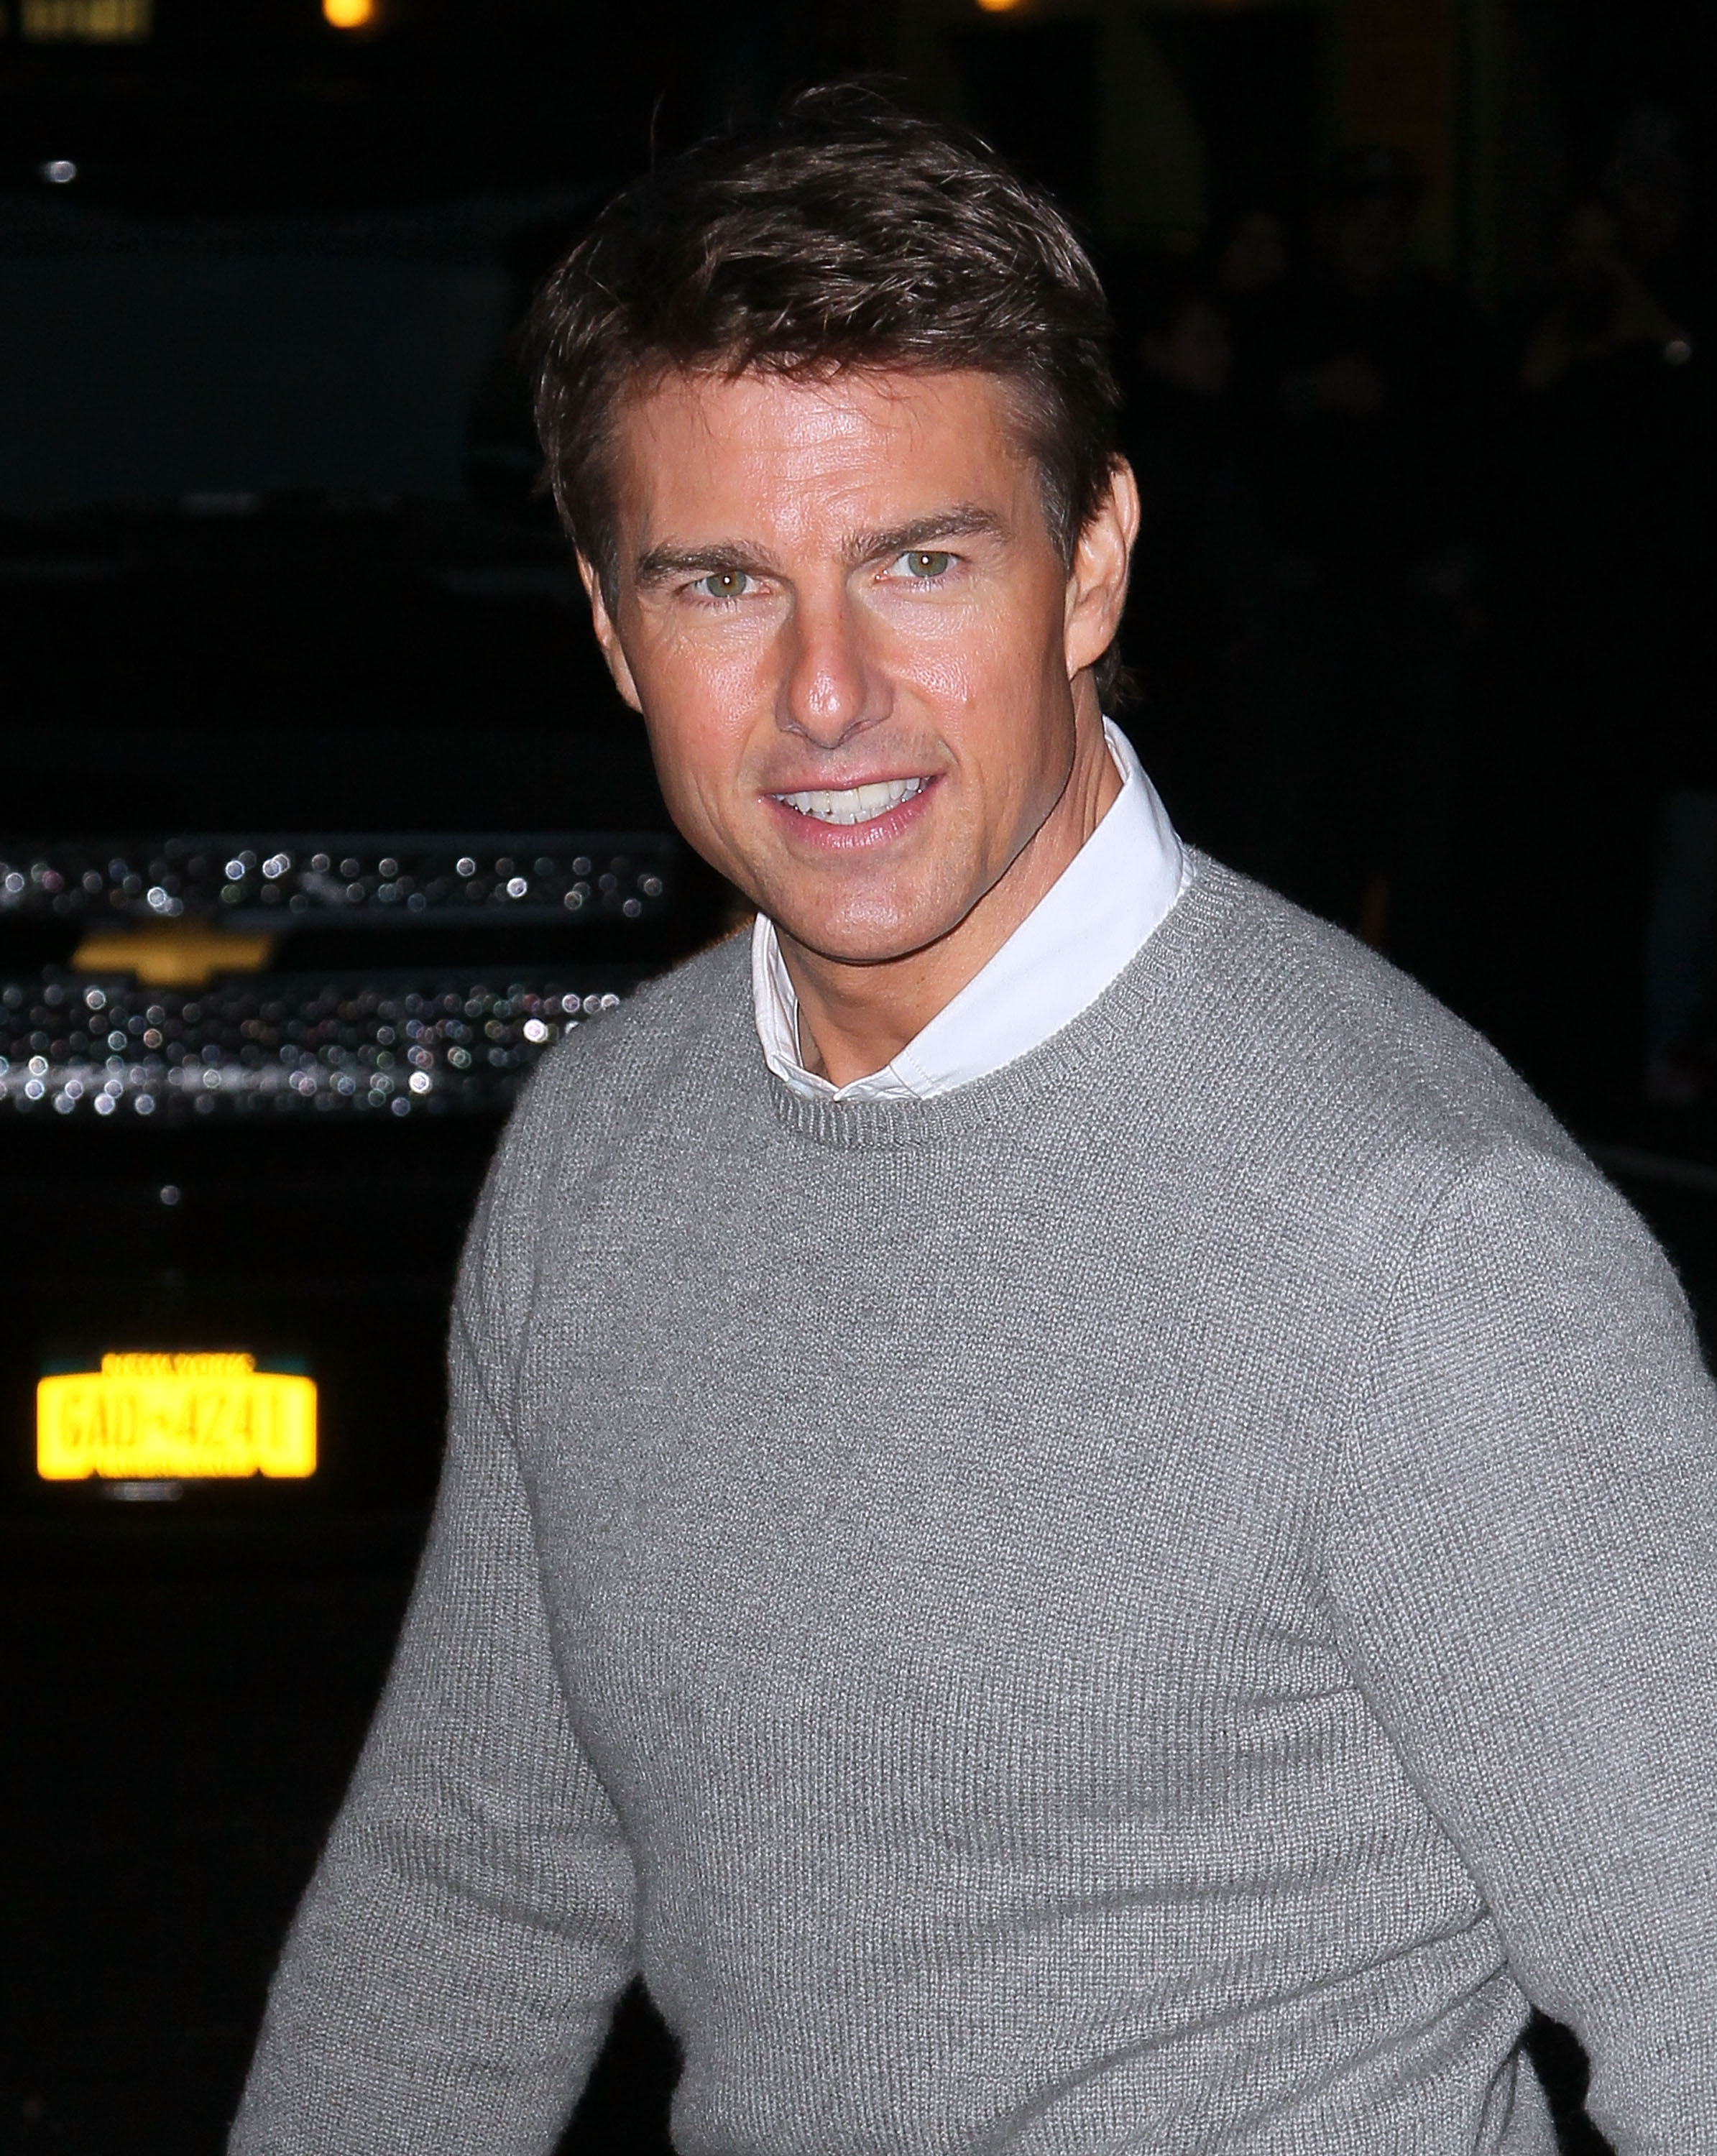 Tom Cruise was in NYC.